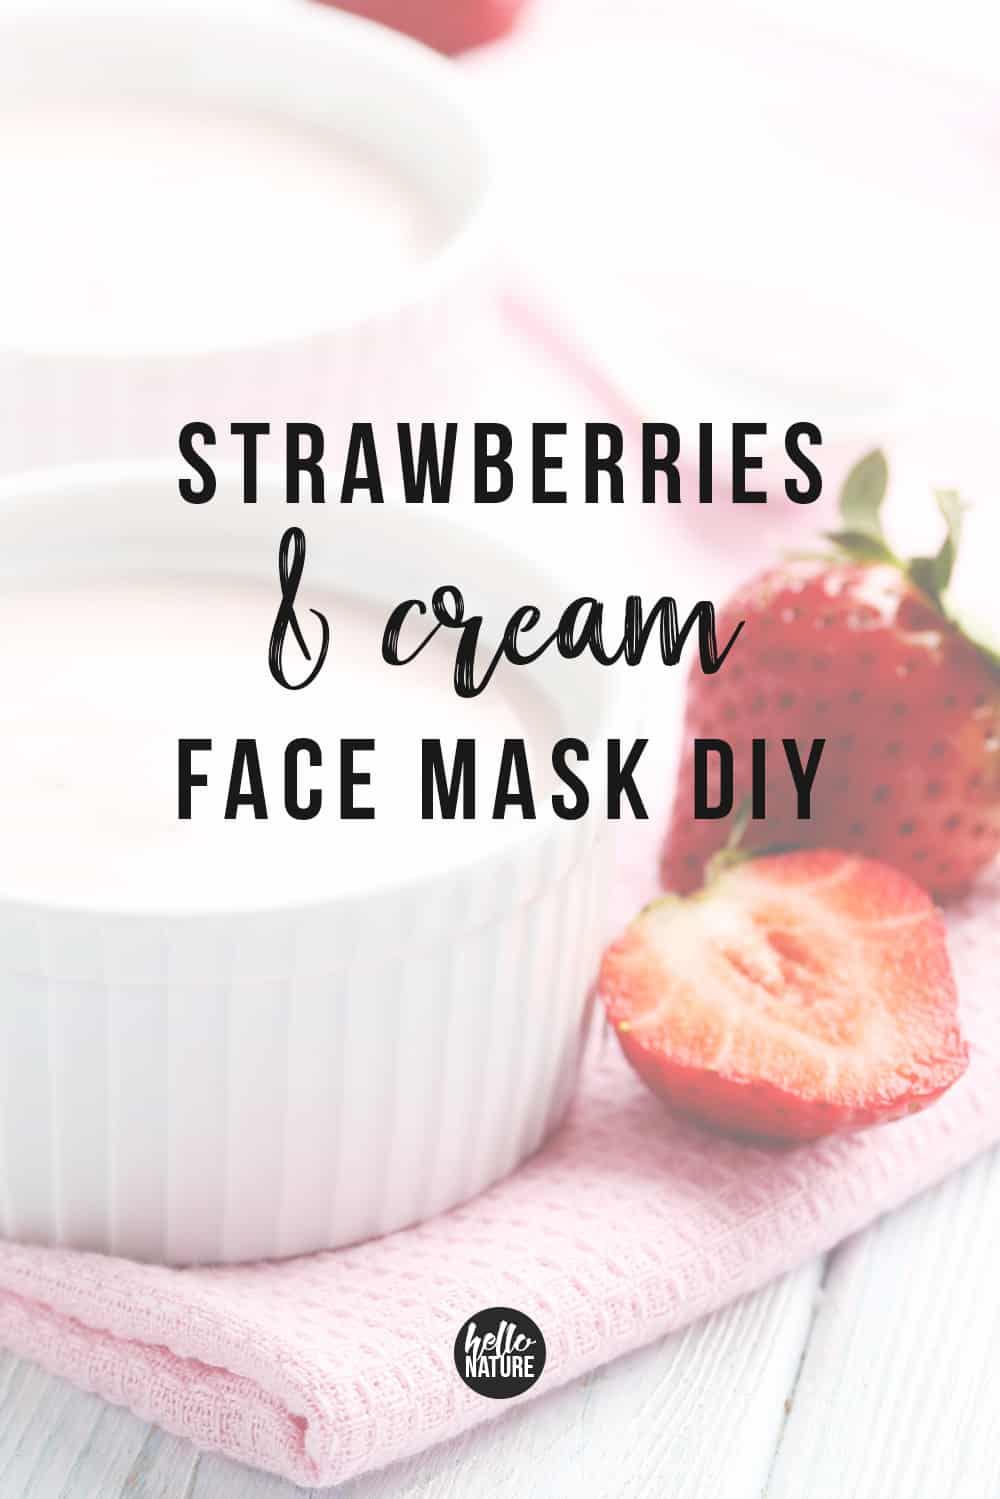 If you want a natural way to relieve dry, irritated skin, you'll love this homemade Strawberry Yogurt and Oatmeal Face Mask DIY. It's soothing and super easy to make with just three ingredients. Your face will reap the benefits from this simple DIY face mask at home in your PJs for less than the cost of a Starbucks latte. #OatmealFaceMask #StrawberryFaceMask #YogurtFaceMask #FaceMaskDIY #DIYFaceMask #DIYBeauty #BeautyDIY #AtHomeSpaNight #FrugalBeauty #BeautyHack #DrySkin